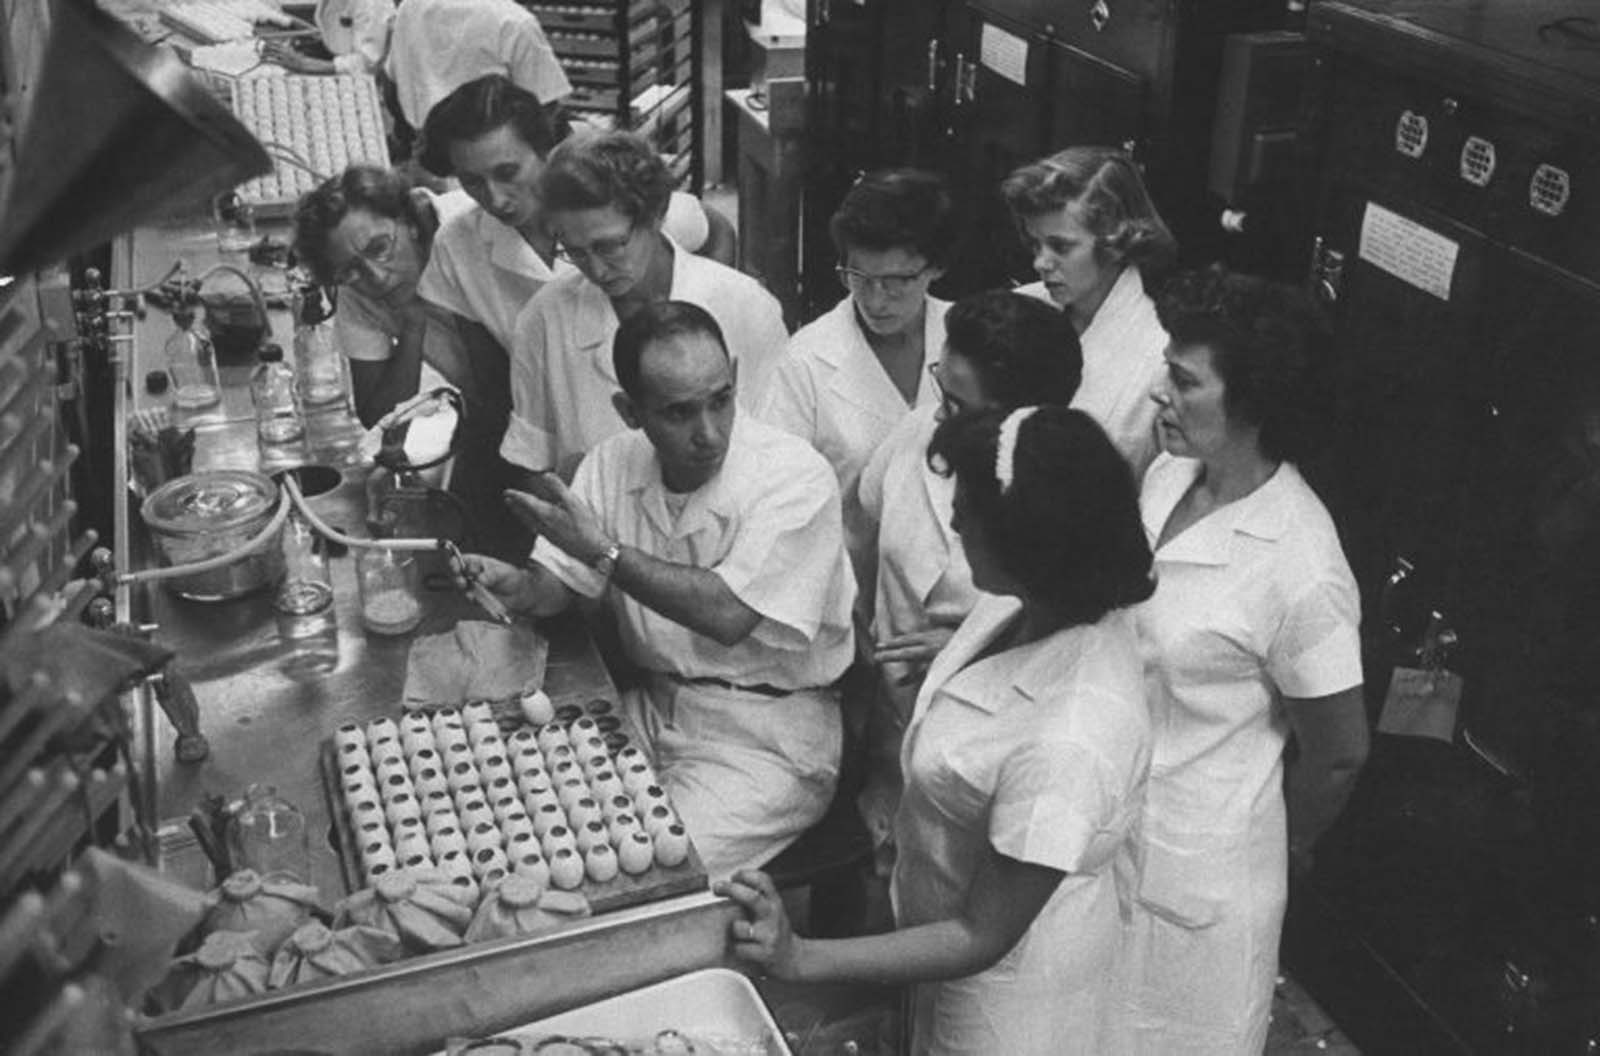 Creating the flu vaccine involved injecting the virus into eggs, where it multiplied. The virus-laden embryonic fluid was then siphoned out, and the virus was killed. That purified fluid became the vaccine. In this photo Jeff Cesarone at the Merck Sharp and Dohme plant in West Point, Pa., explained the process.